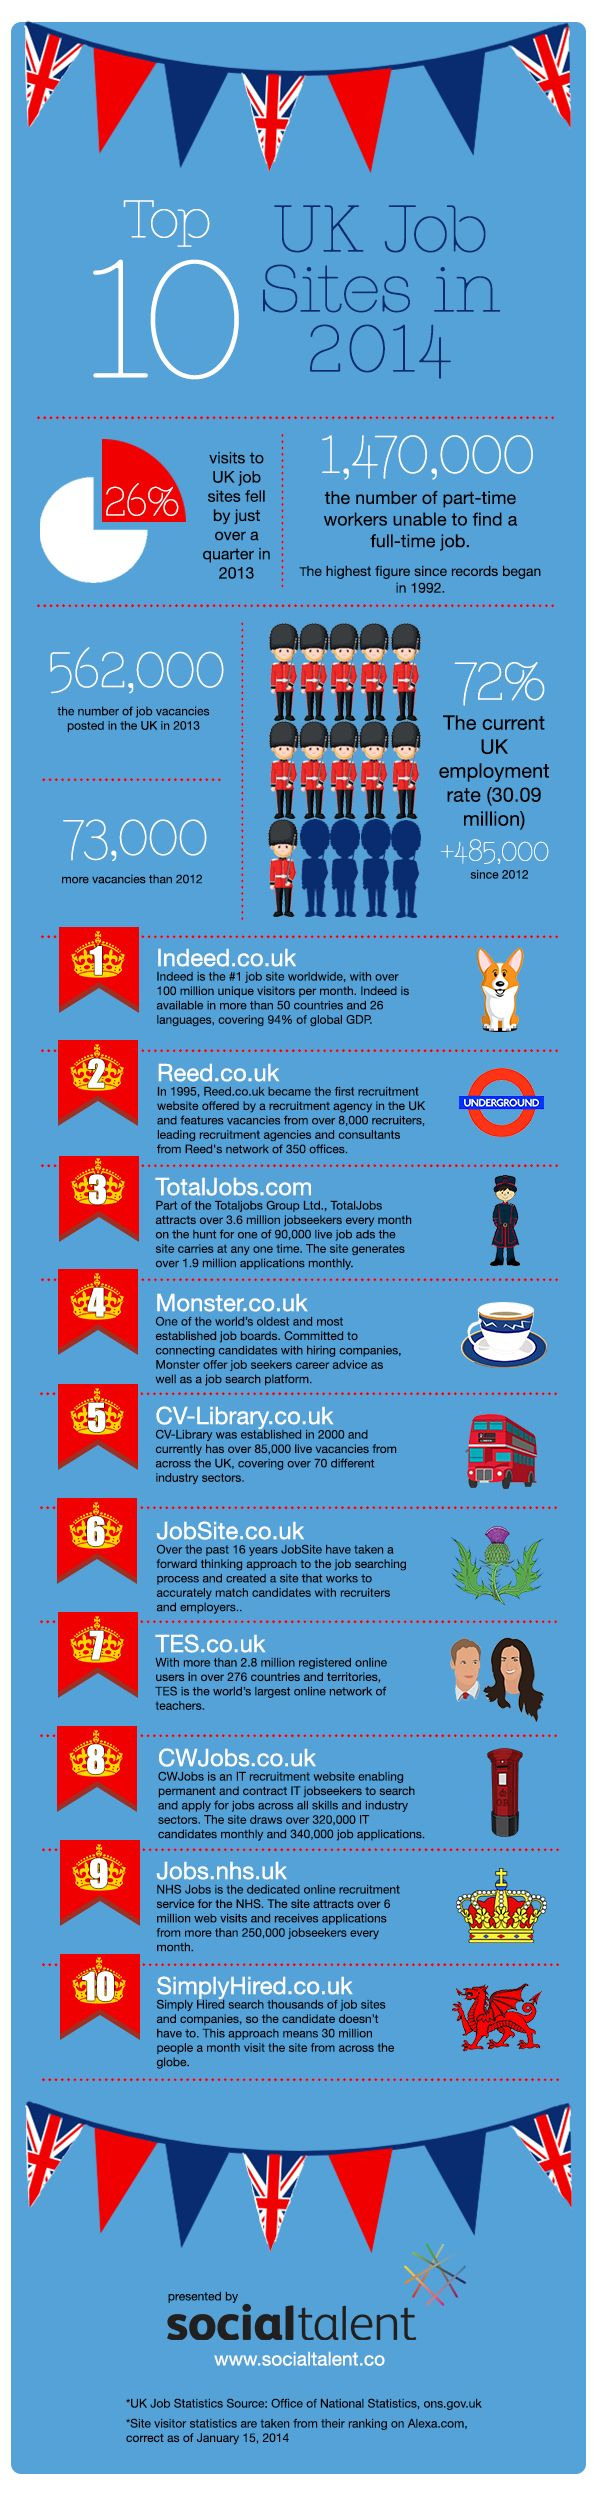 best ideas about site job entrep ocirc ts portes what are the top 10 uk job boards for 2014 infographic